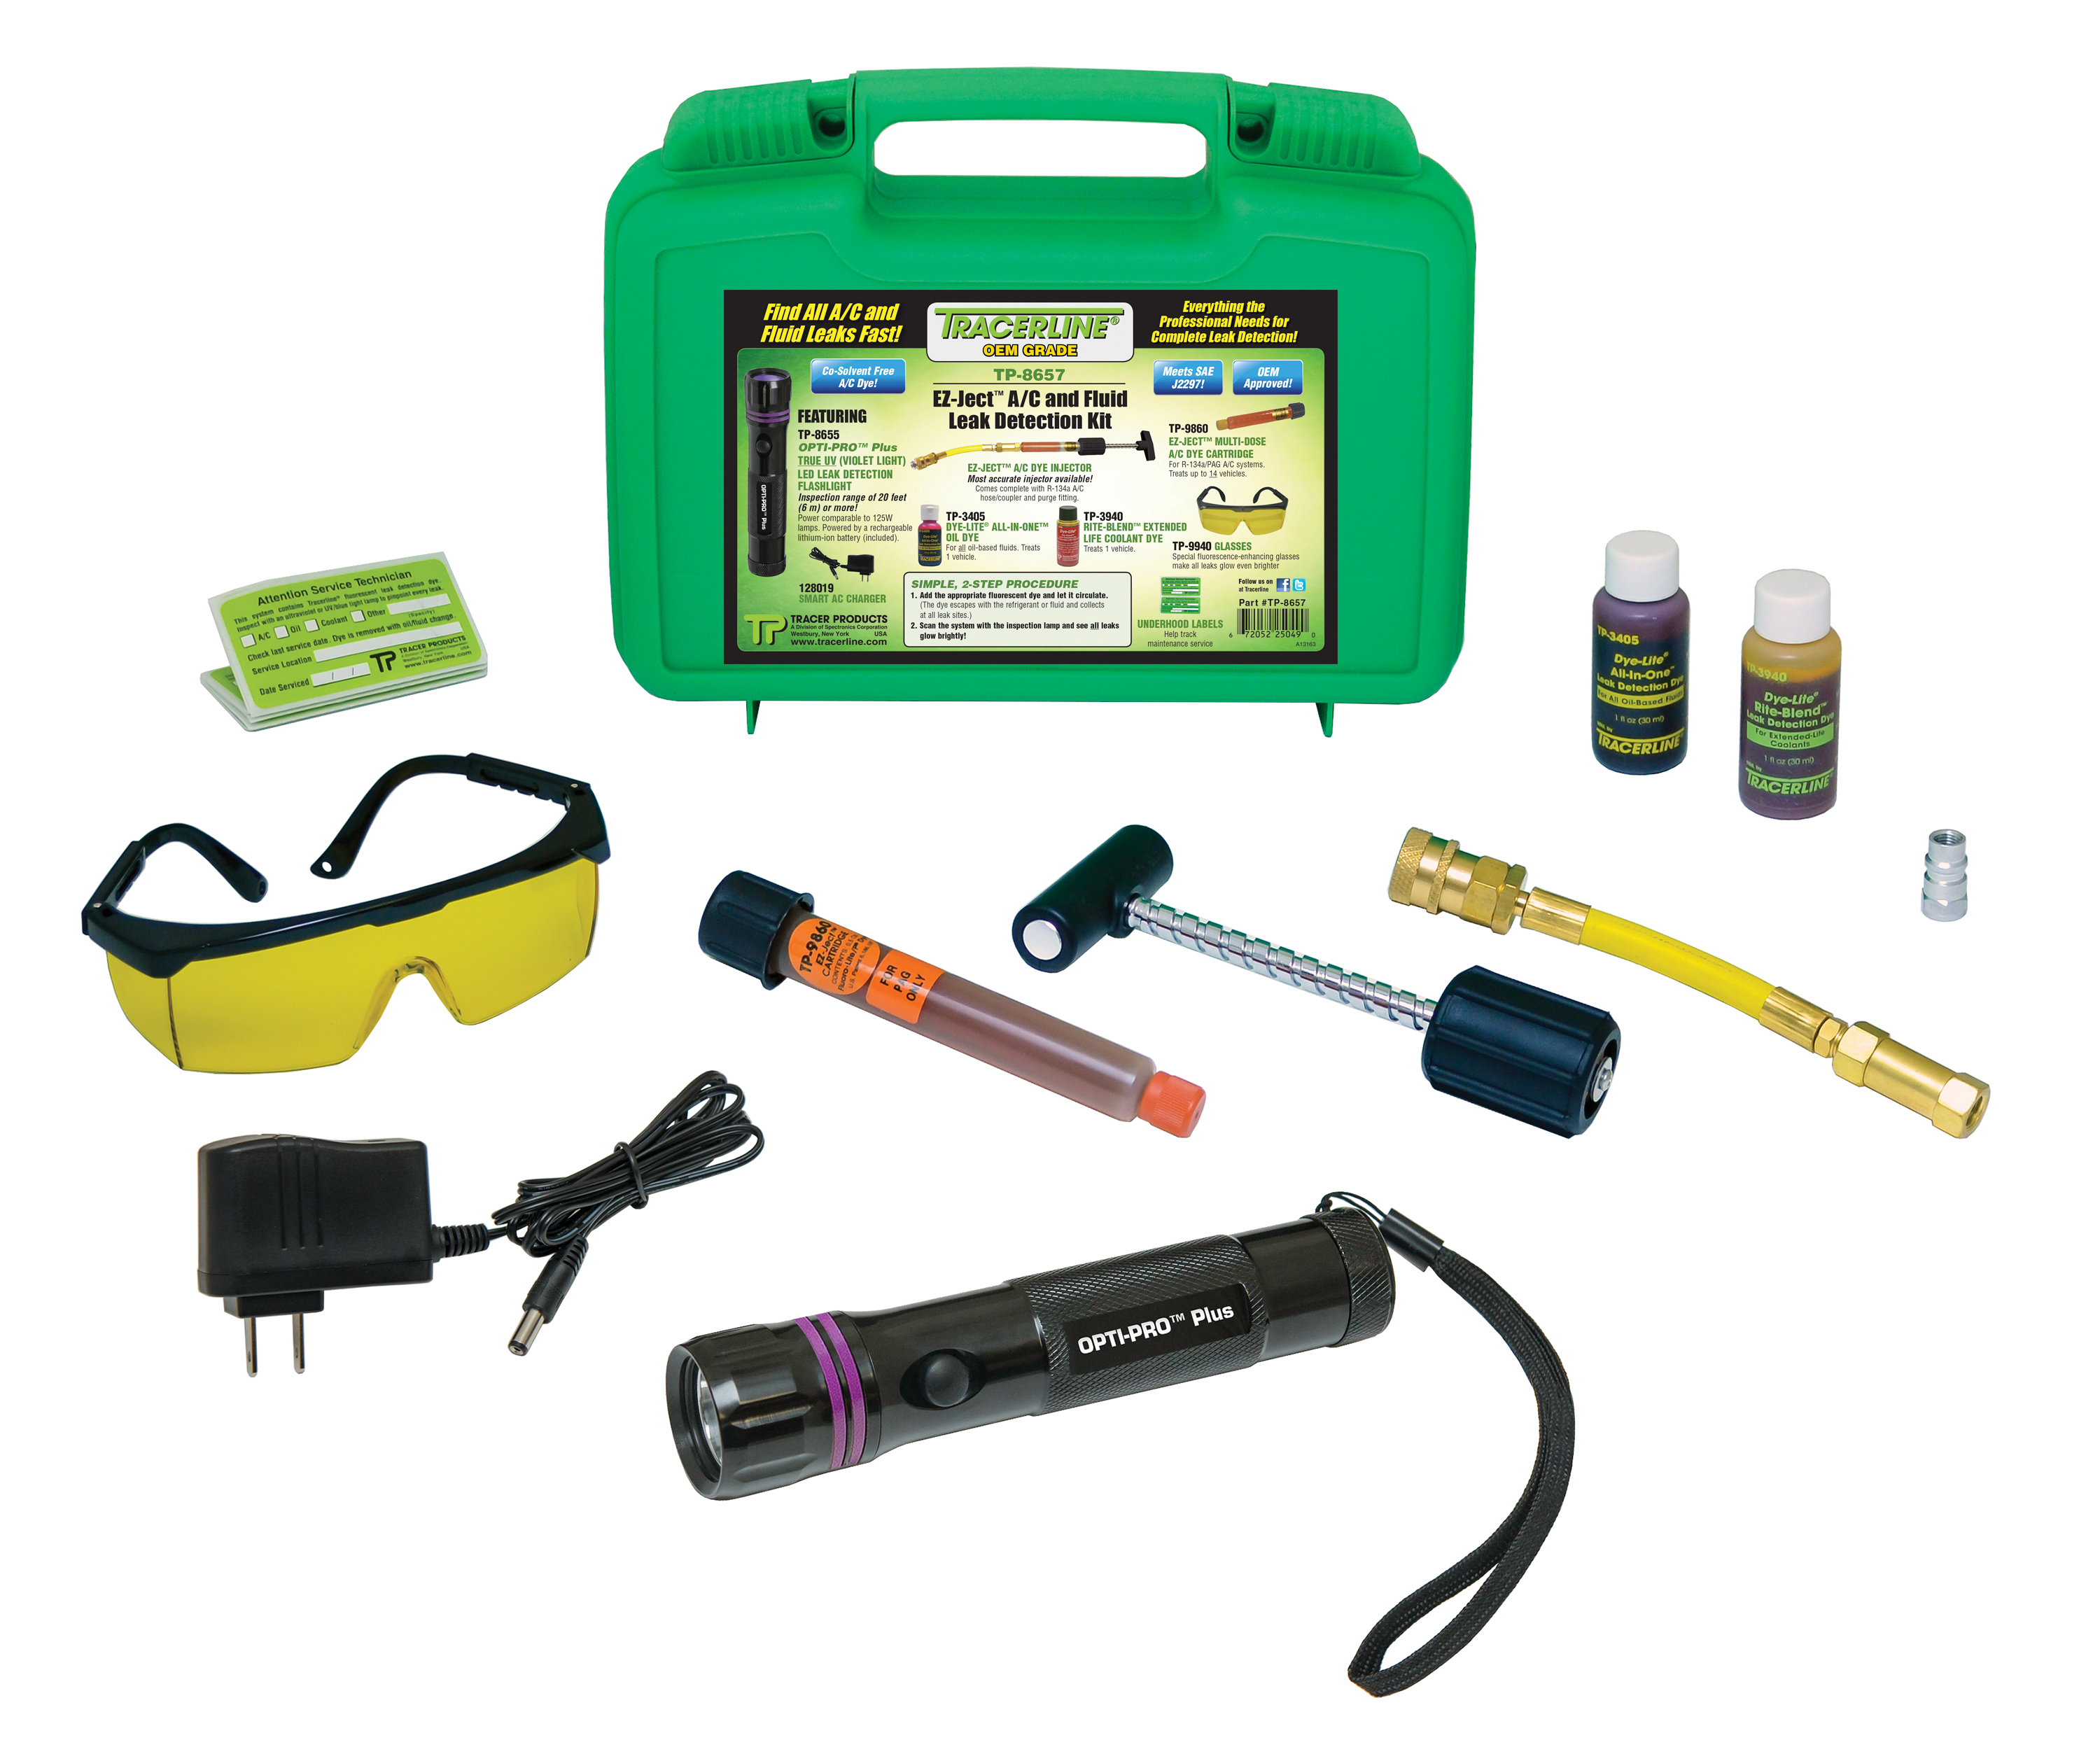 Tracer Articles offers EZ-Ject A/C dye kit